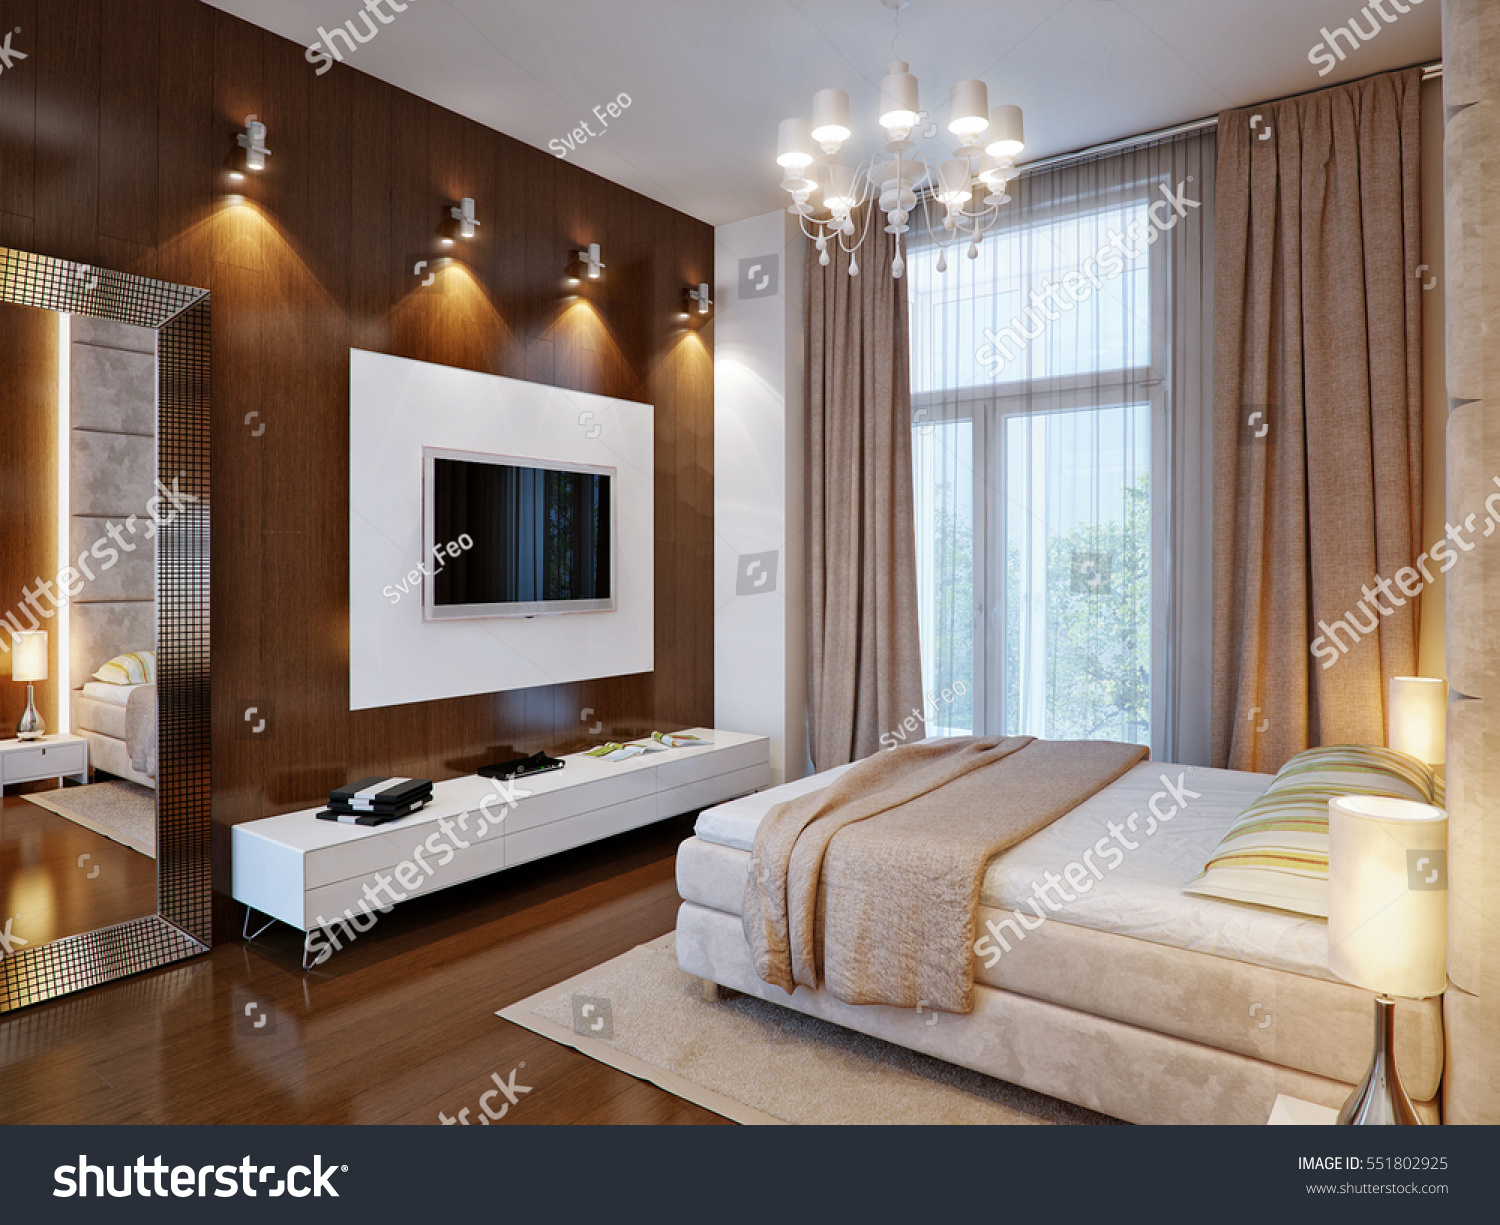 Spacious Master Bedroom Wooden Wall Panels Stock Illustration 551802925